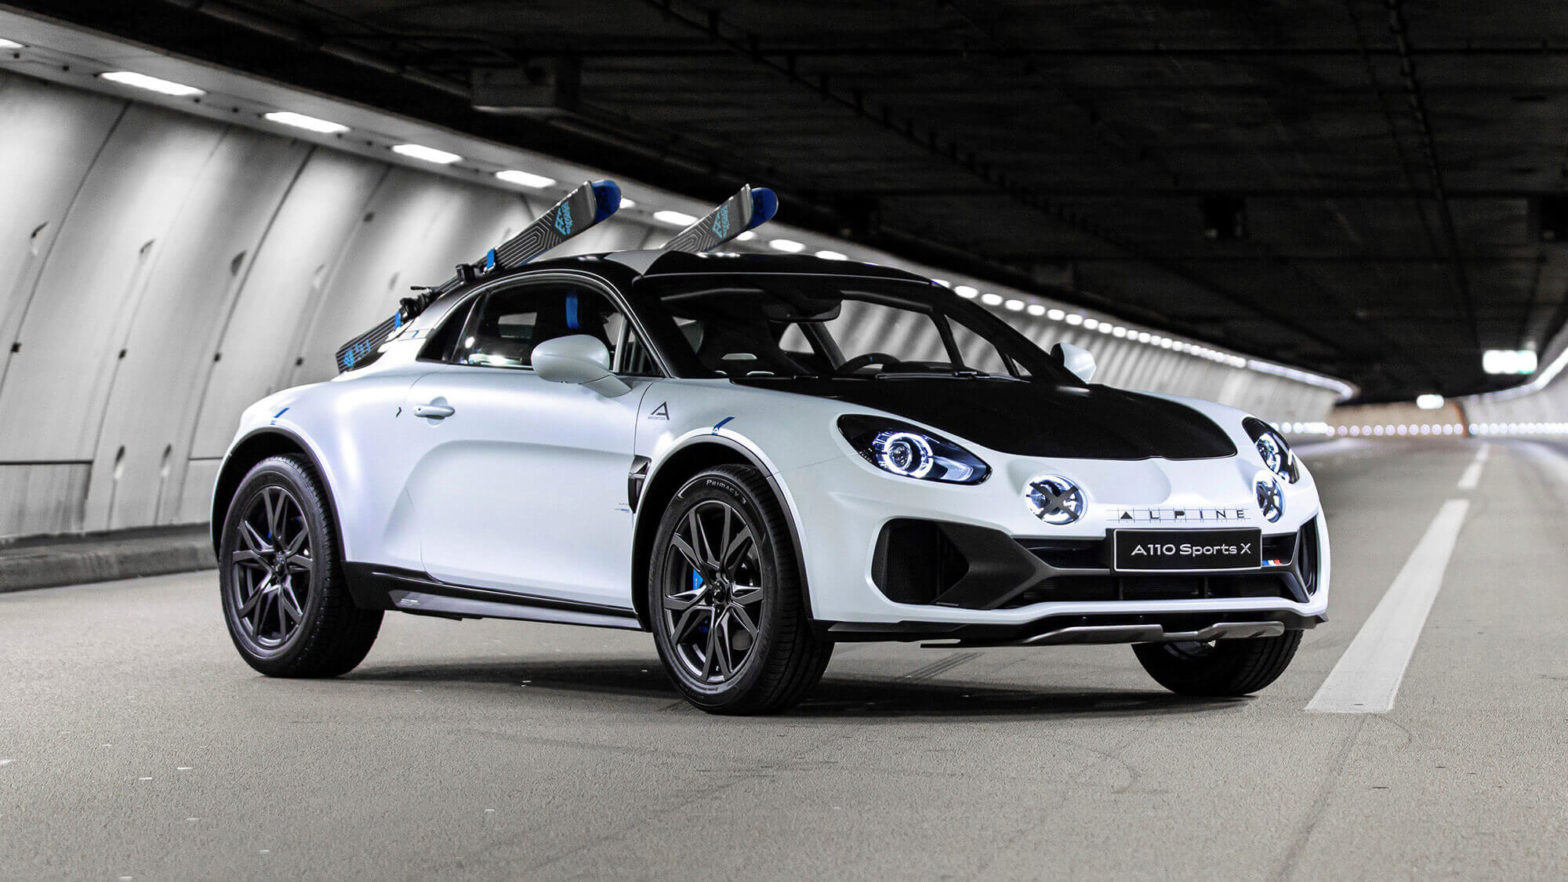 2020 Alpine A110 SportsX Show Car Unveiled